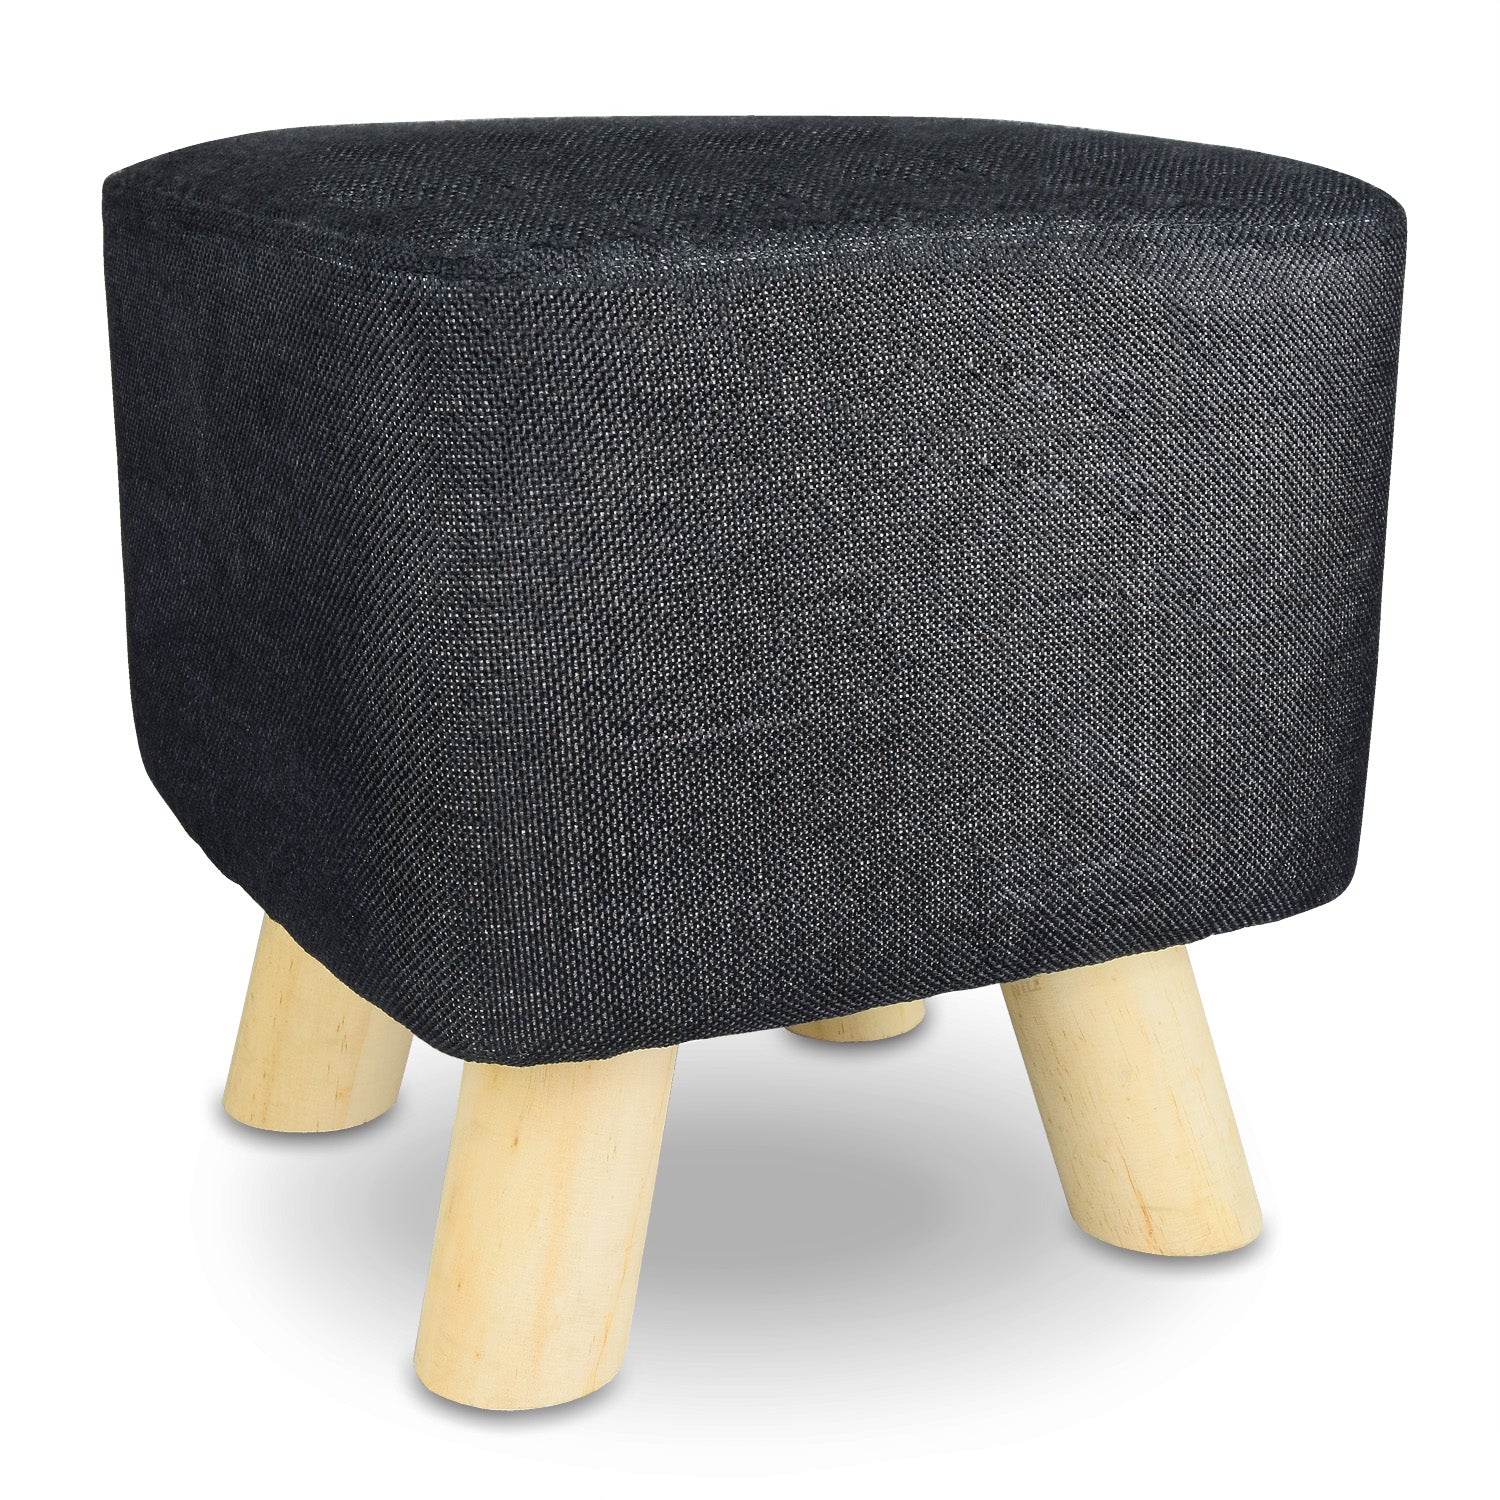 ikee design round pouf upholstered ottoman foot rest stool. Black Bedroom Furniture Sets. Home Design Ideas